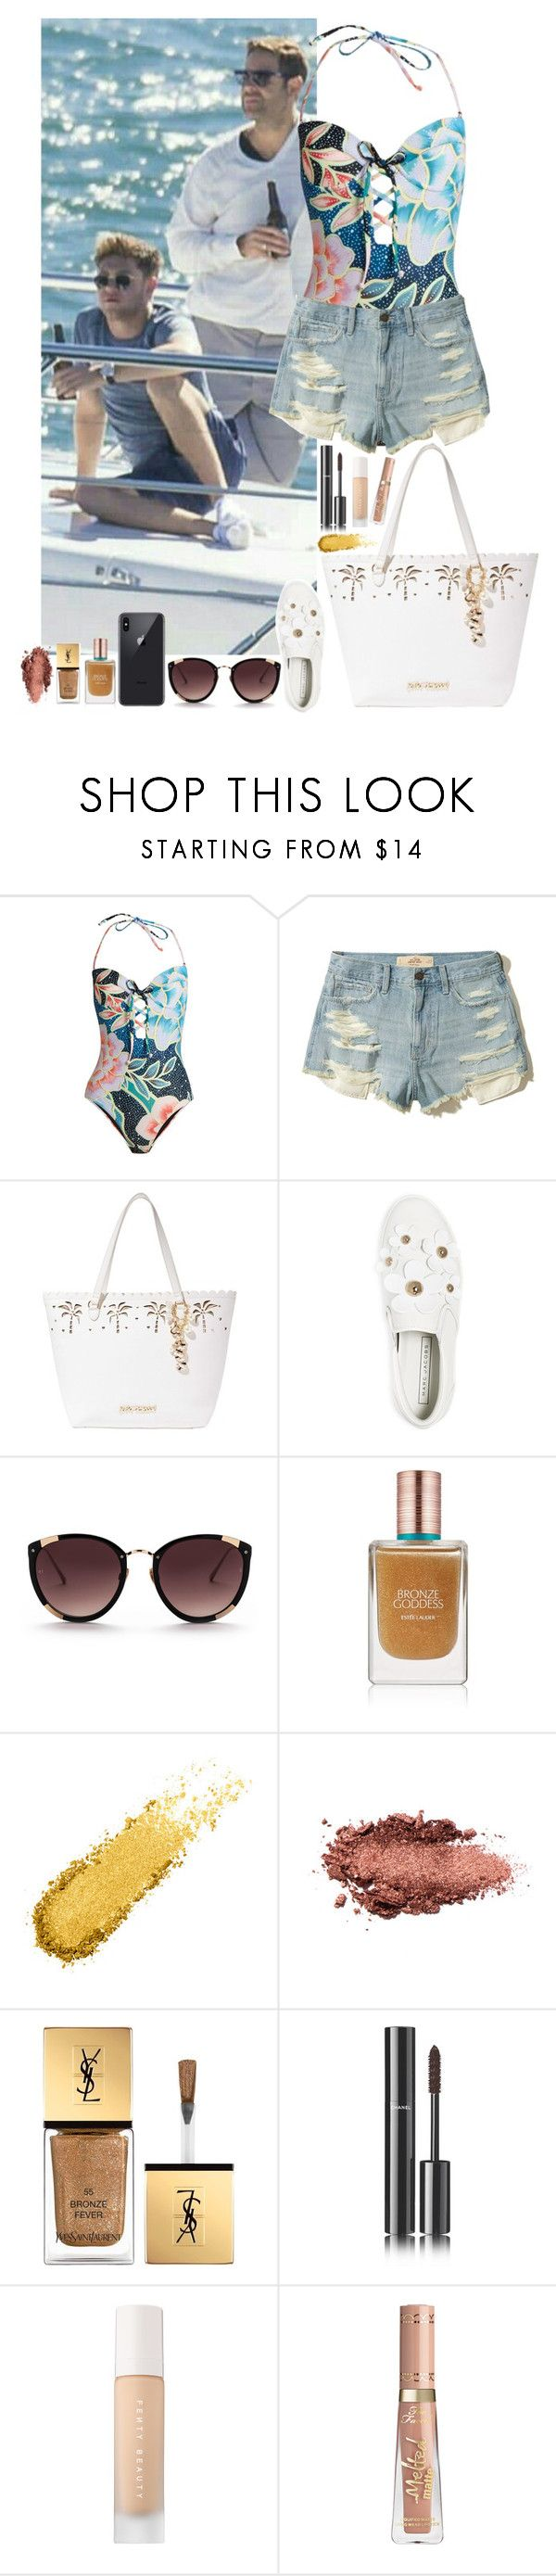 """""""Niall Horan #135"""" by ambere3love34 ❤ liked on Polyvore featuring Mara Hoffman, Hollister Co., Betsey Johnson, Marc Jacobs, Rebecca Taylor, Estée Lauder, Yves Saint Laurent, Chanel and Puma"""